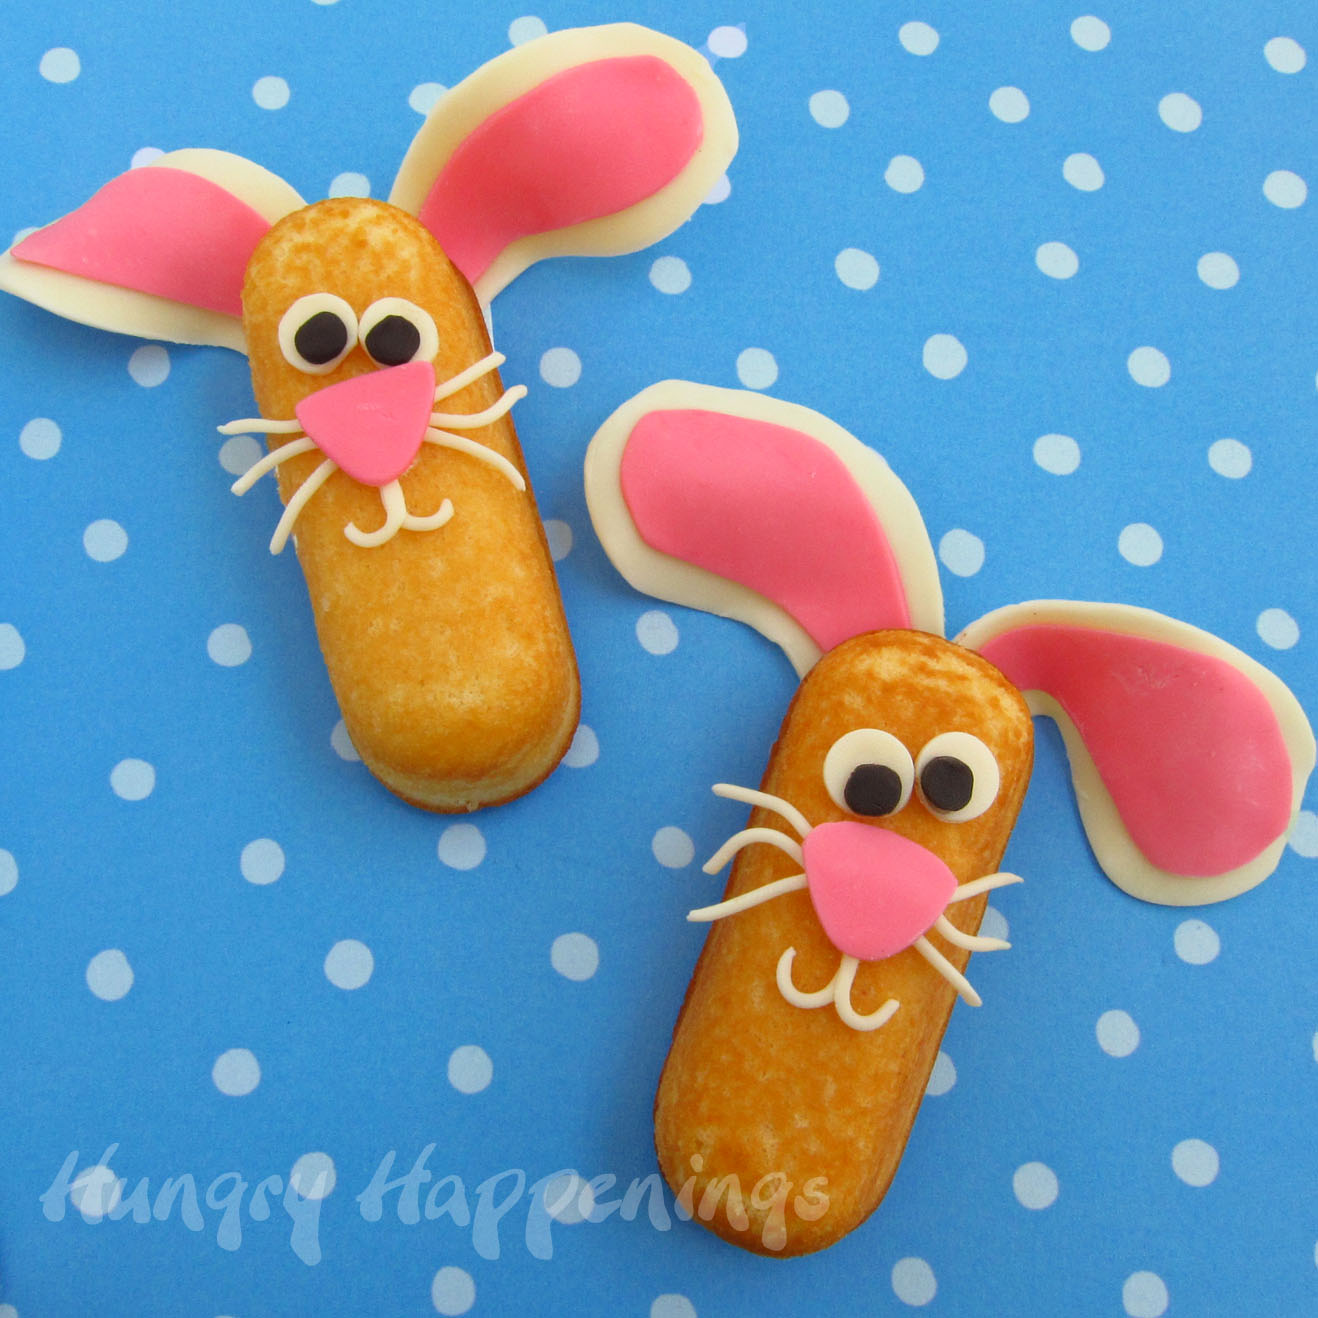 Reese 39 s peanut butter bunny feet hungry happenings for Cool food ideas for kids